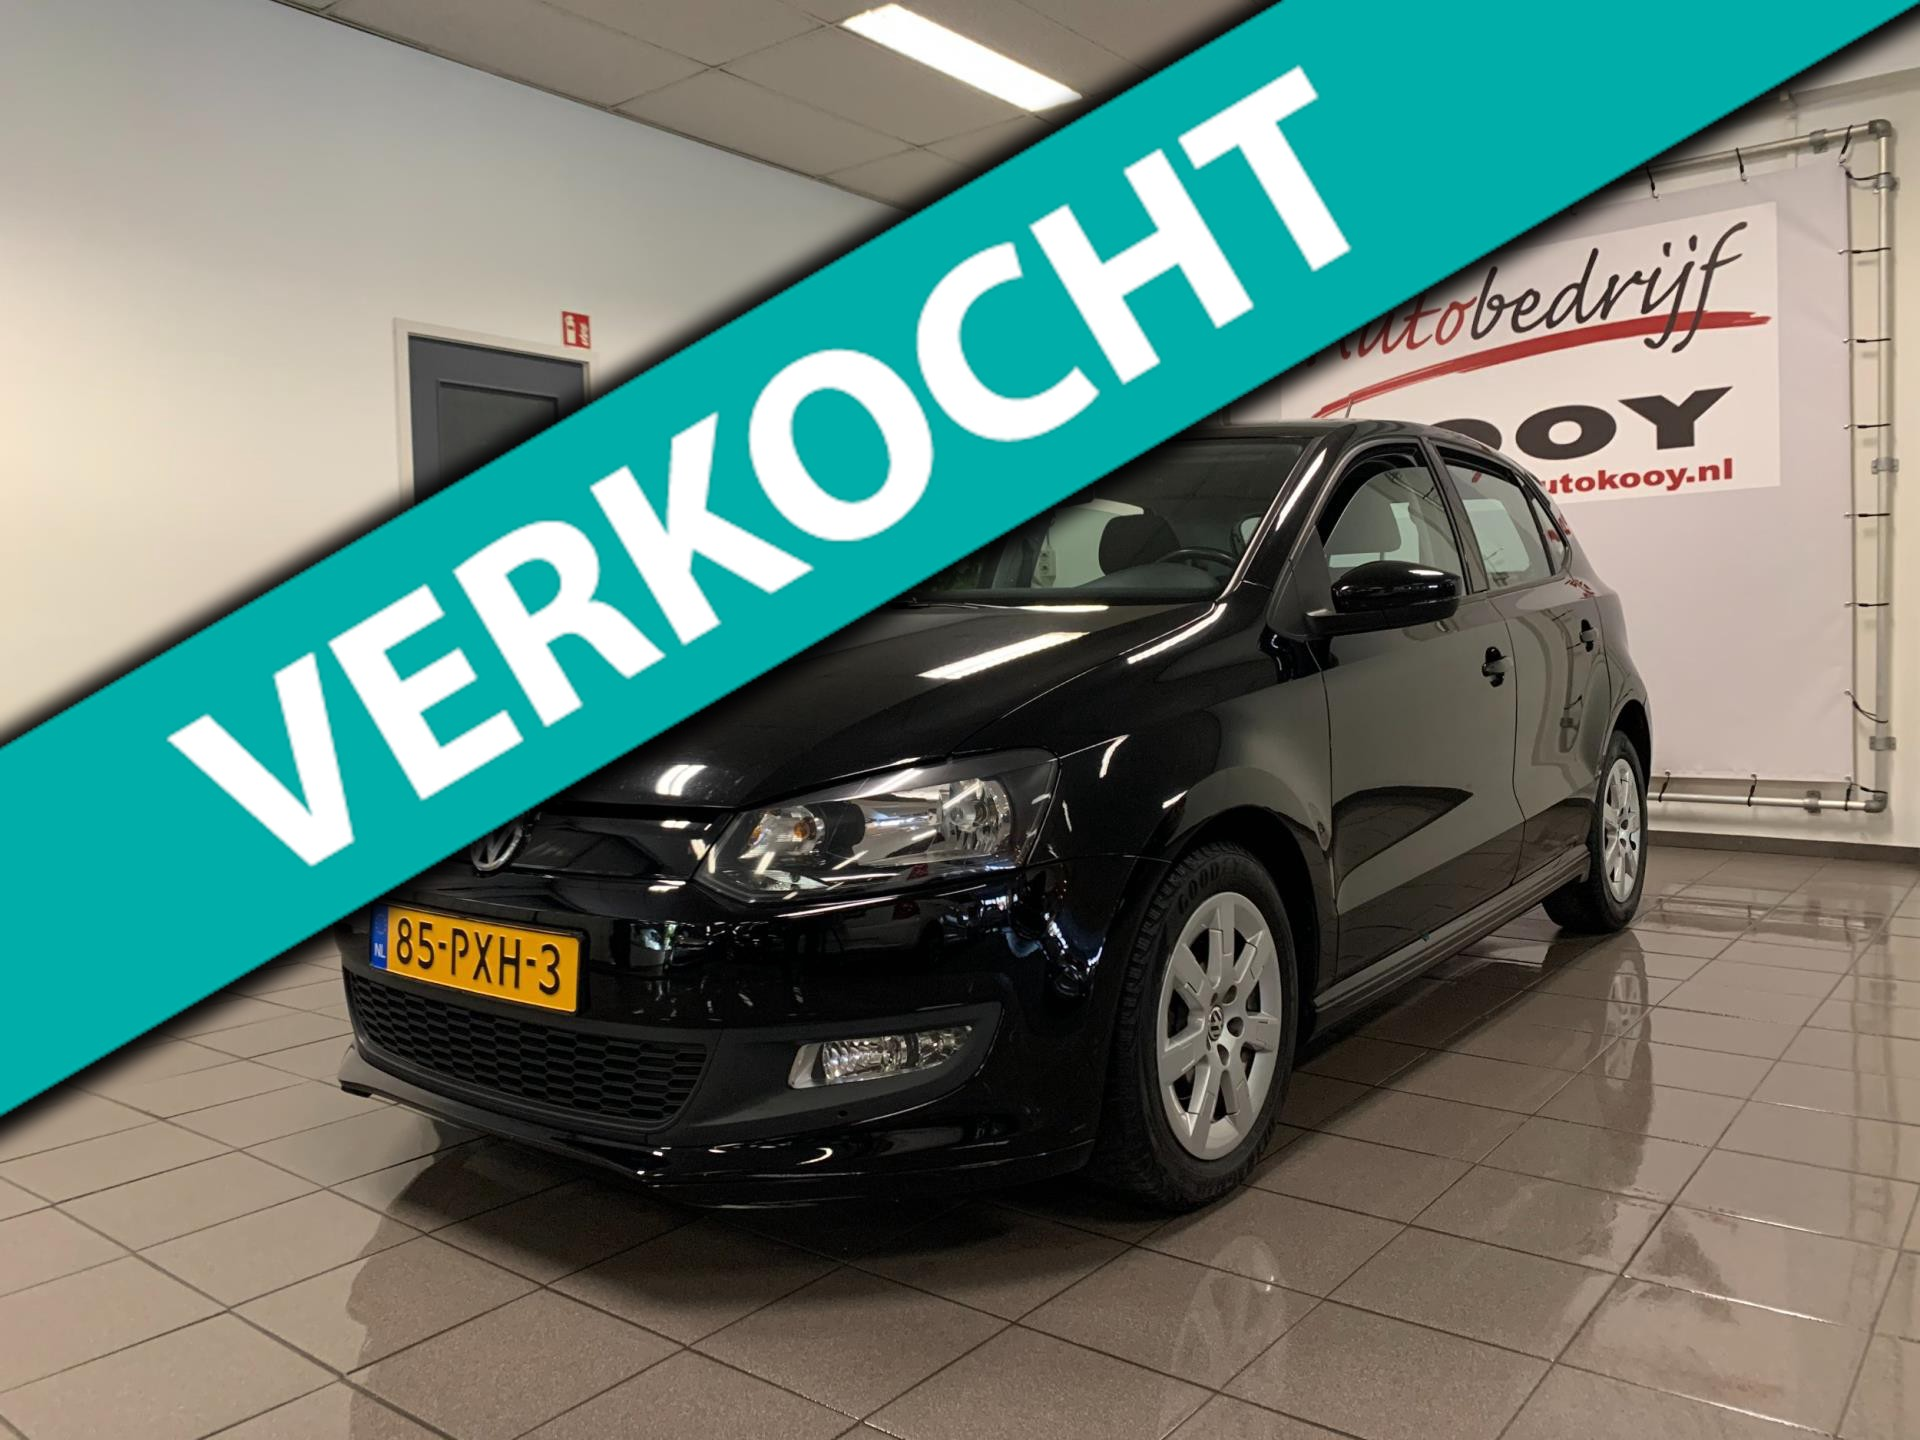 Volkswagen Polo 1.2 TDI BlueMotion Comfortline * Airco / Navigatie / Cruise control *